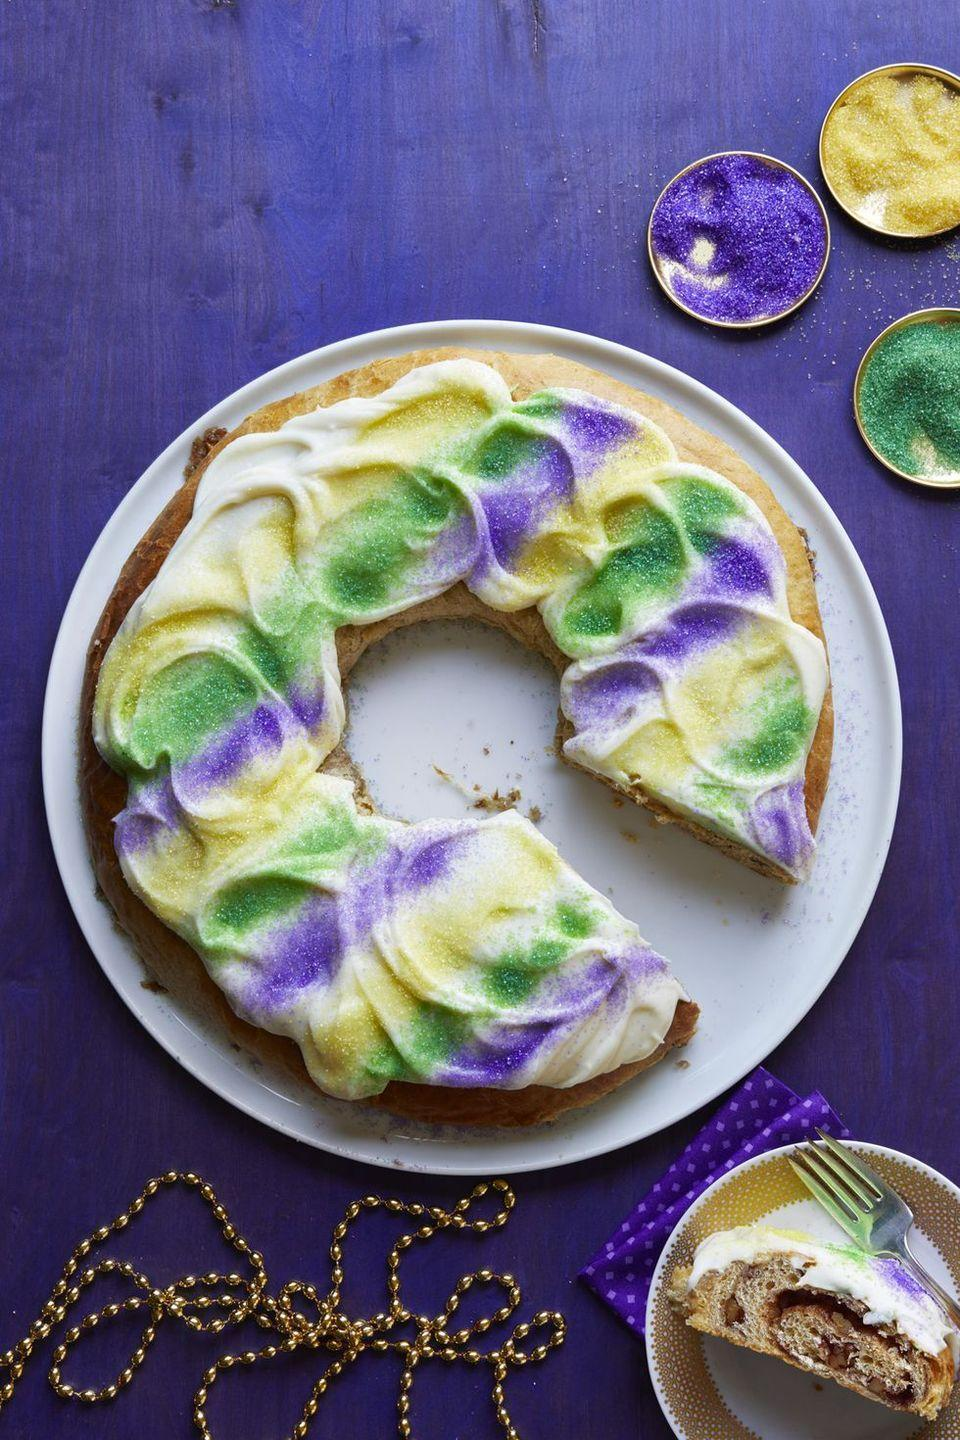 """<p>During Mardi Gras season in New Orleans, <a href=""""http://www.womansday.com/food-recipes/food-drinks/recipes/a61040/king-cake-recipe/"""" rel=""""nofollow noopener"""" target=""""_blank"""" data-ylk=""""slk:king cakes"""" class=""""link rapid-noclick-resp"""">king cakes</a> are ubiquitous. Each pastry is hiding a tiny plastic baby inside. Tradition holds that if you find the baby inside your <a href=""""https://www.countryliving.com/food-drinks/g745/homemade-cake-recipes-0309/"""" rel=""""nofollow noopener"""" target=""""_blank"""" data-ylk=""""slk:slice of cake,"""" class=""""link rapid-noclick-resp"""">slice of cake,</a> you'll be bringing king cake to the next gathering. </p>"""